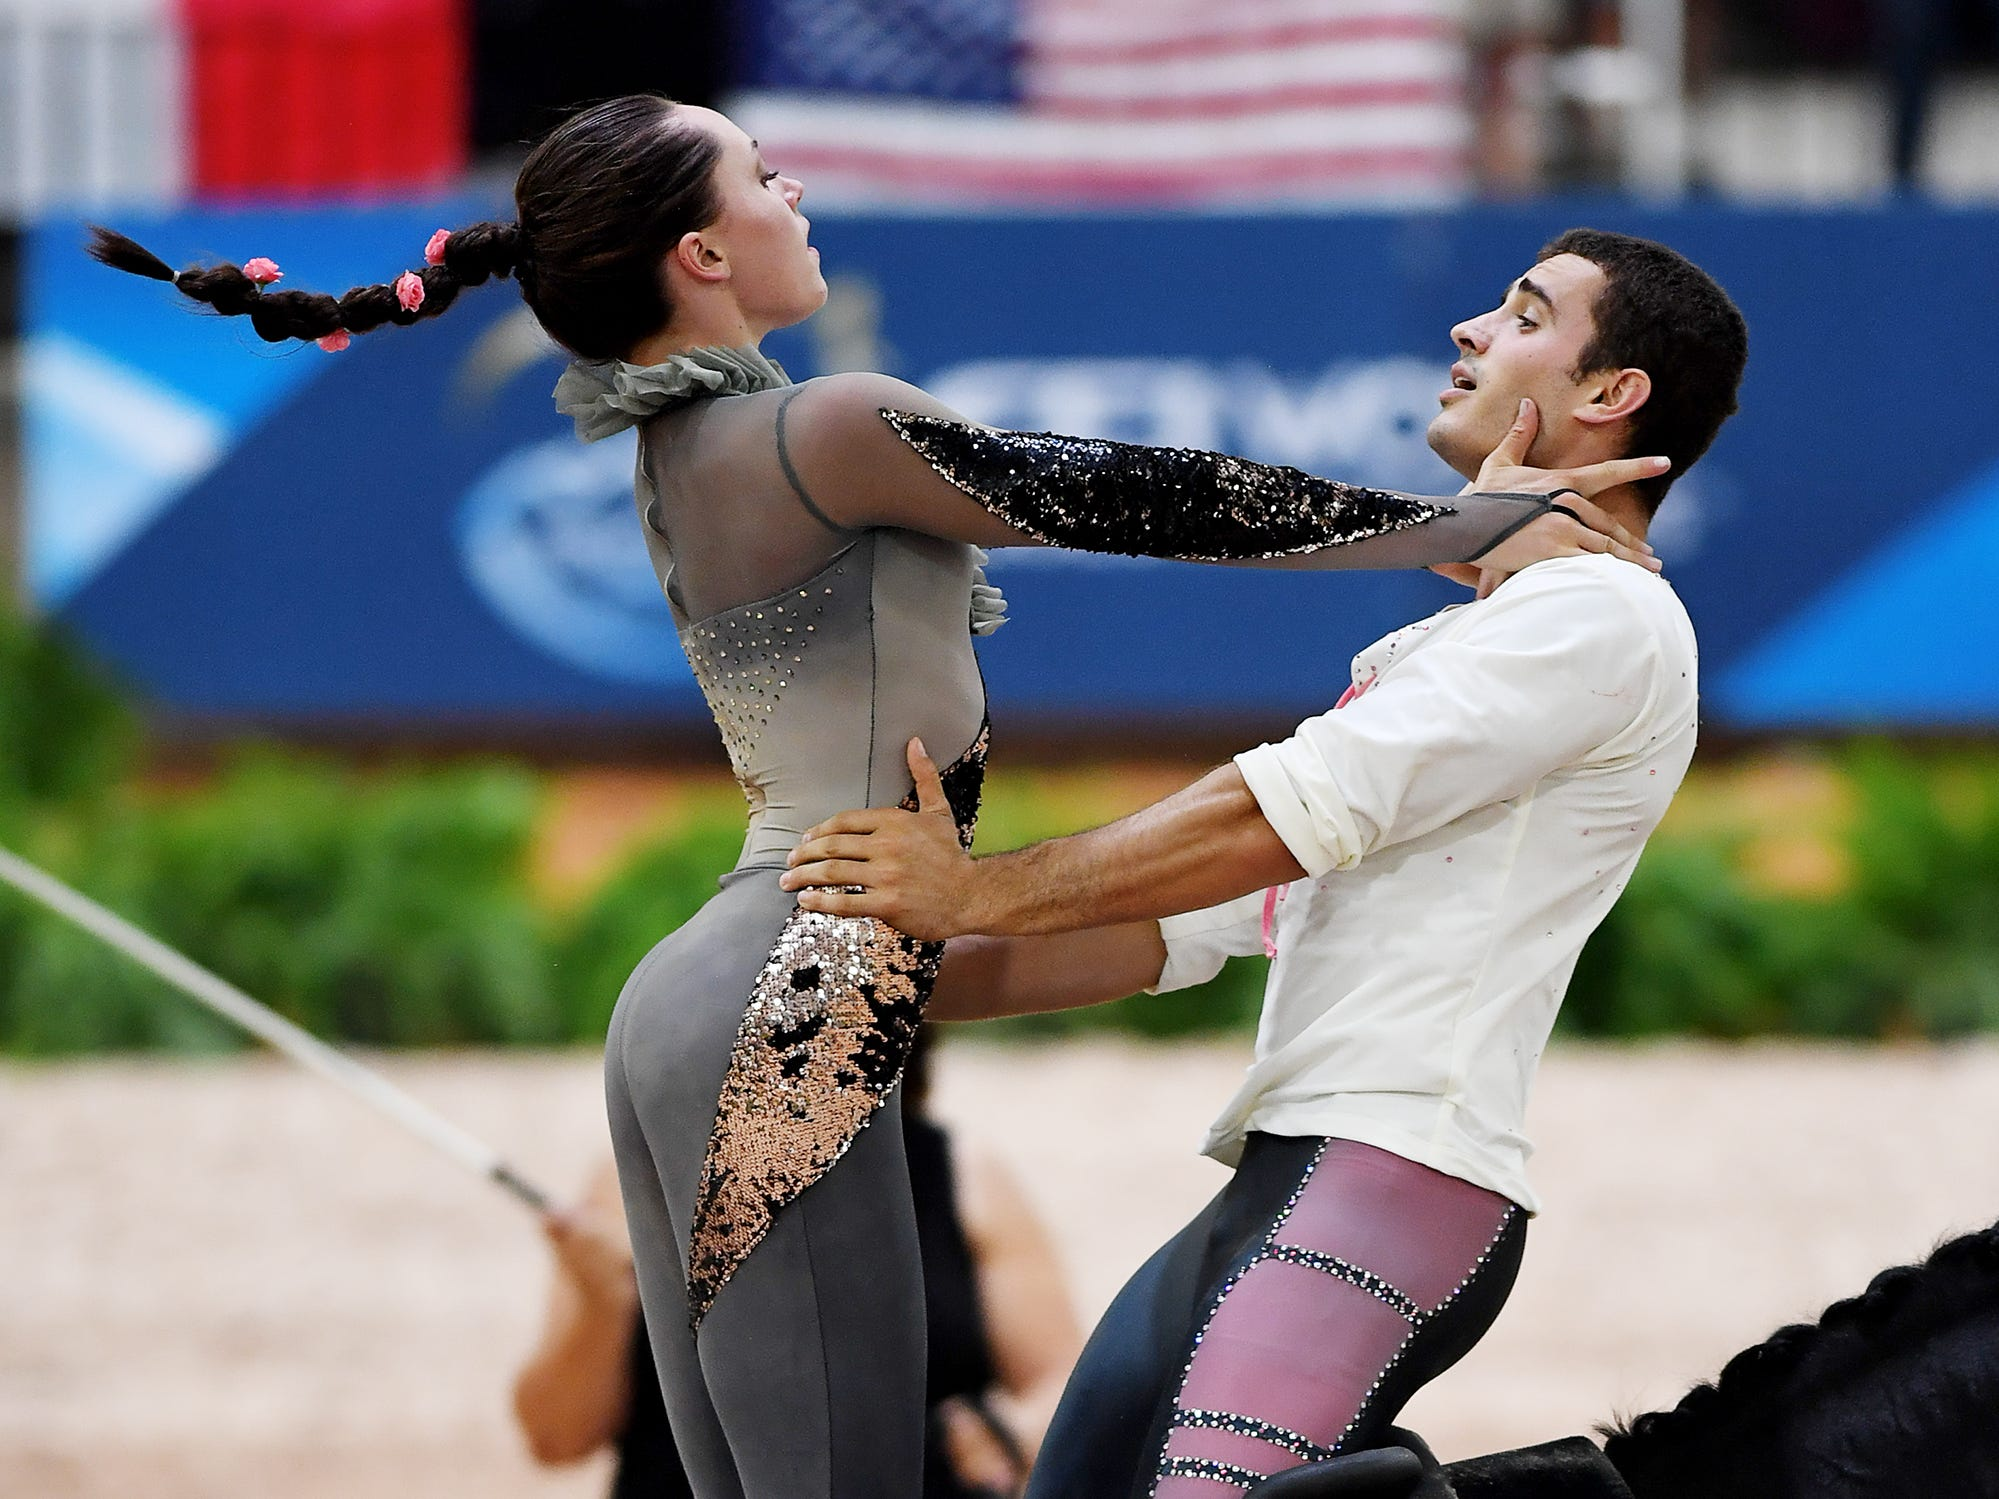 Scenes from the vaulting competition at the World Equestrian Games Sept. 19, 2018.